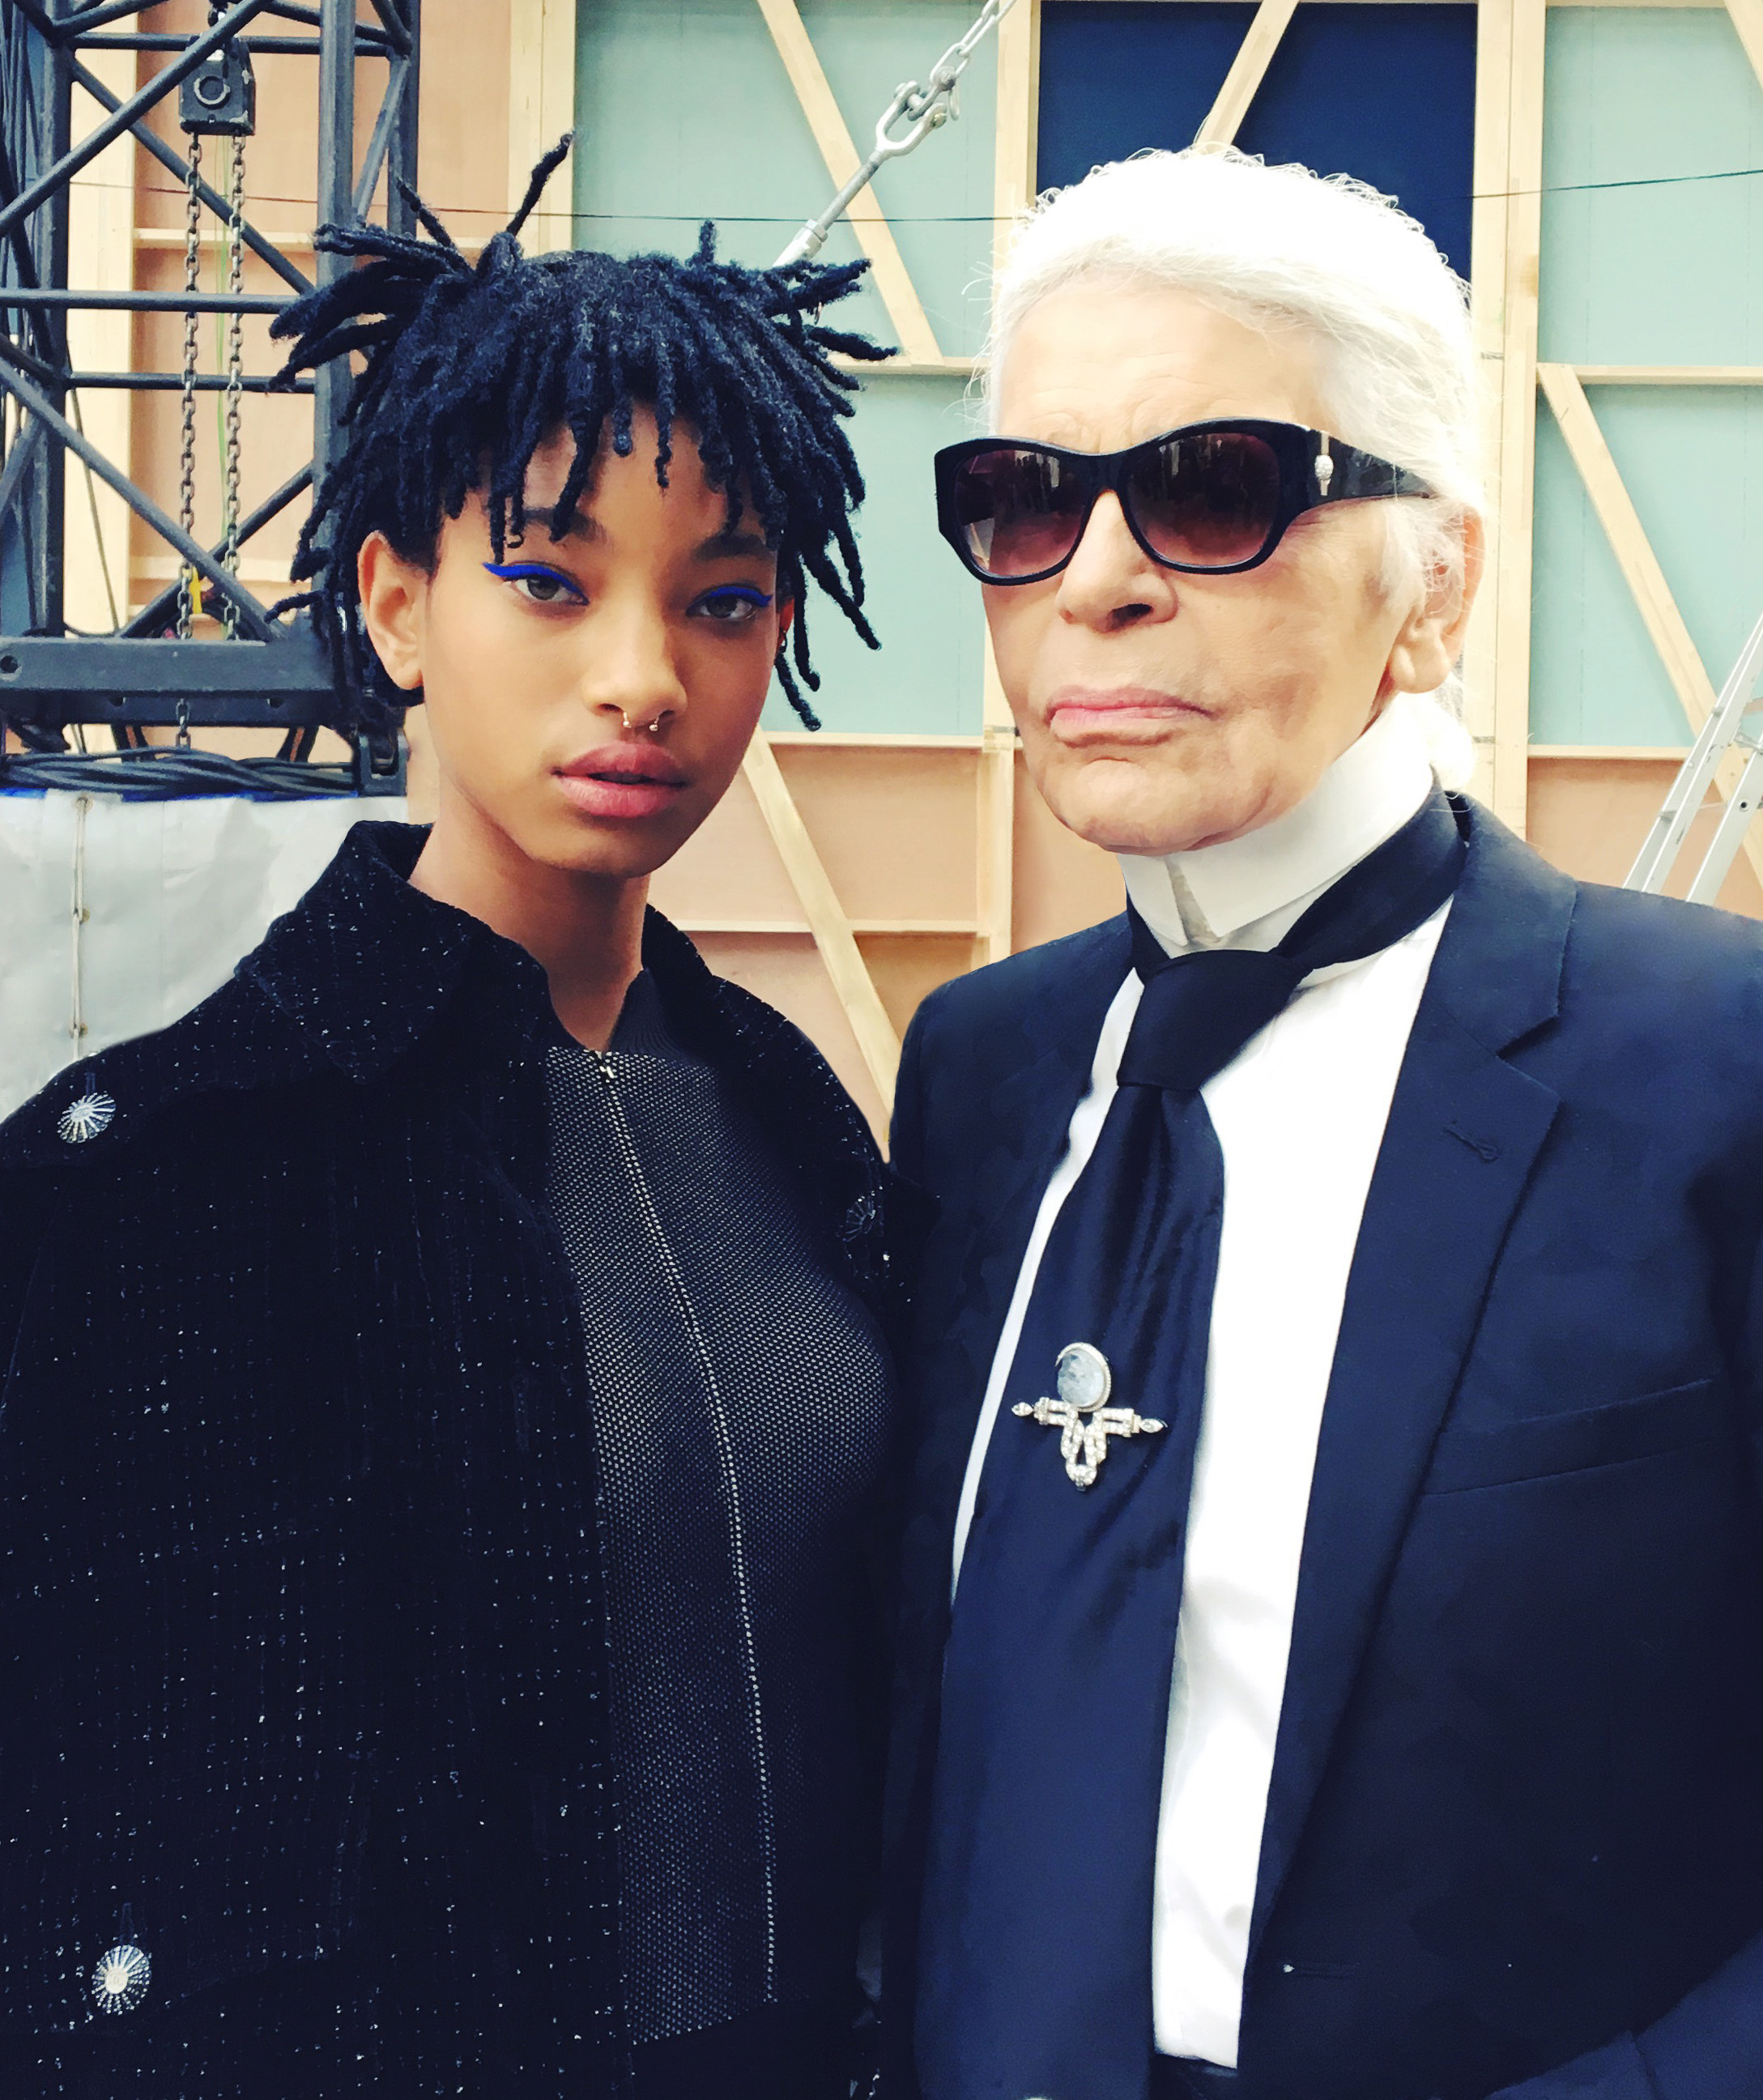 Karl Lagerfeld and Willow Smith Fashionela